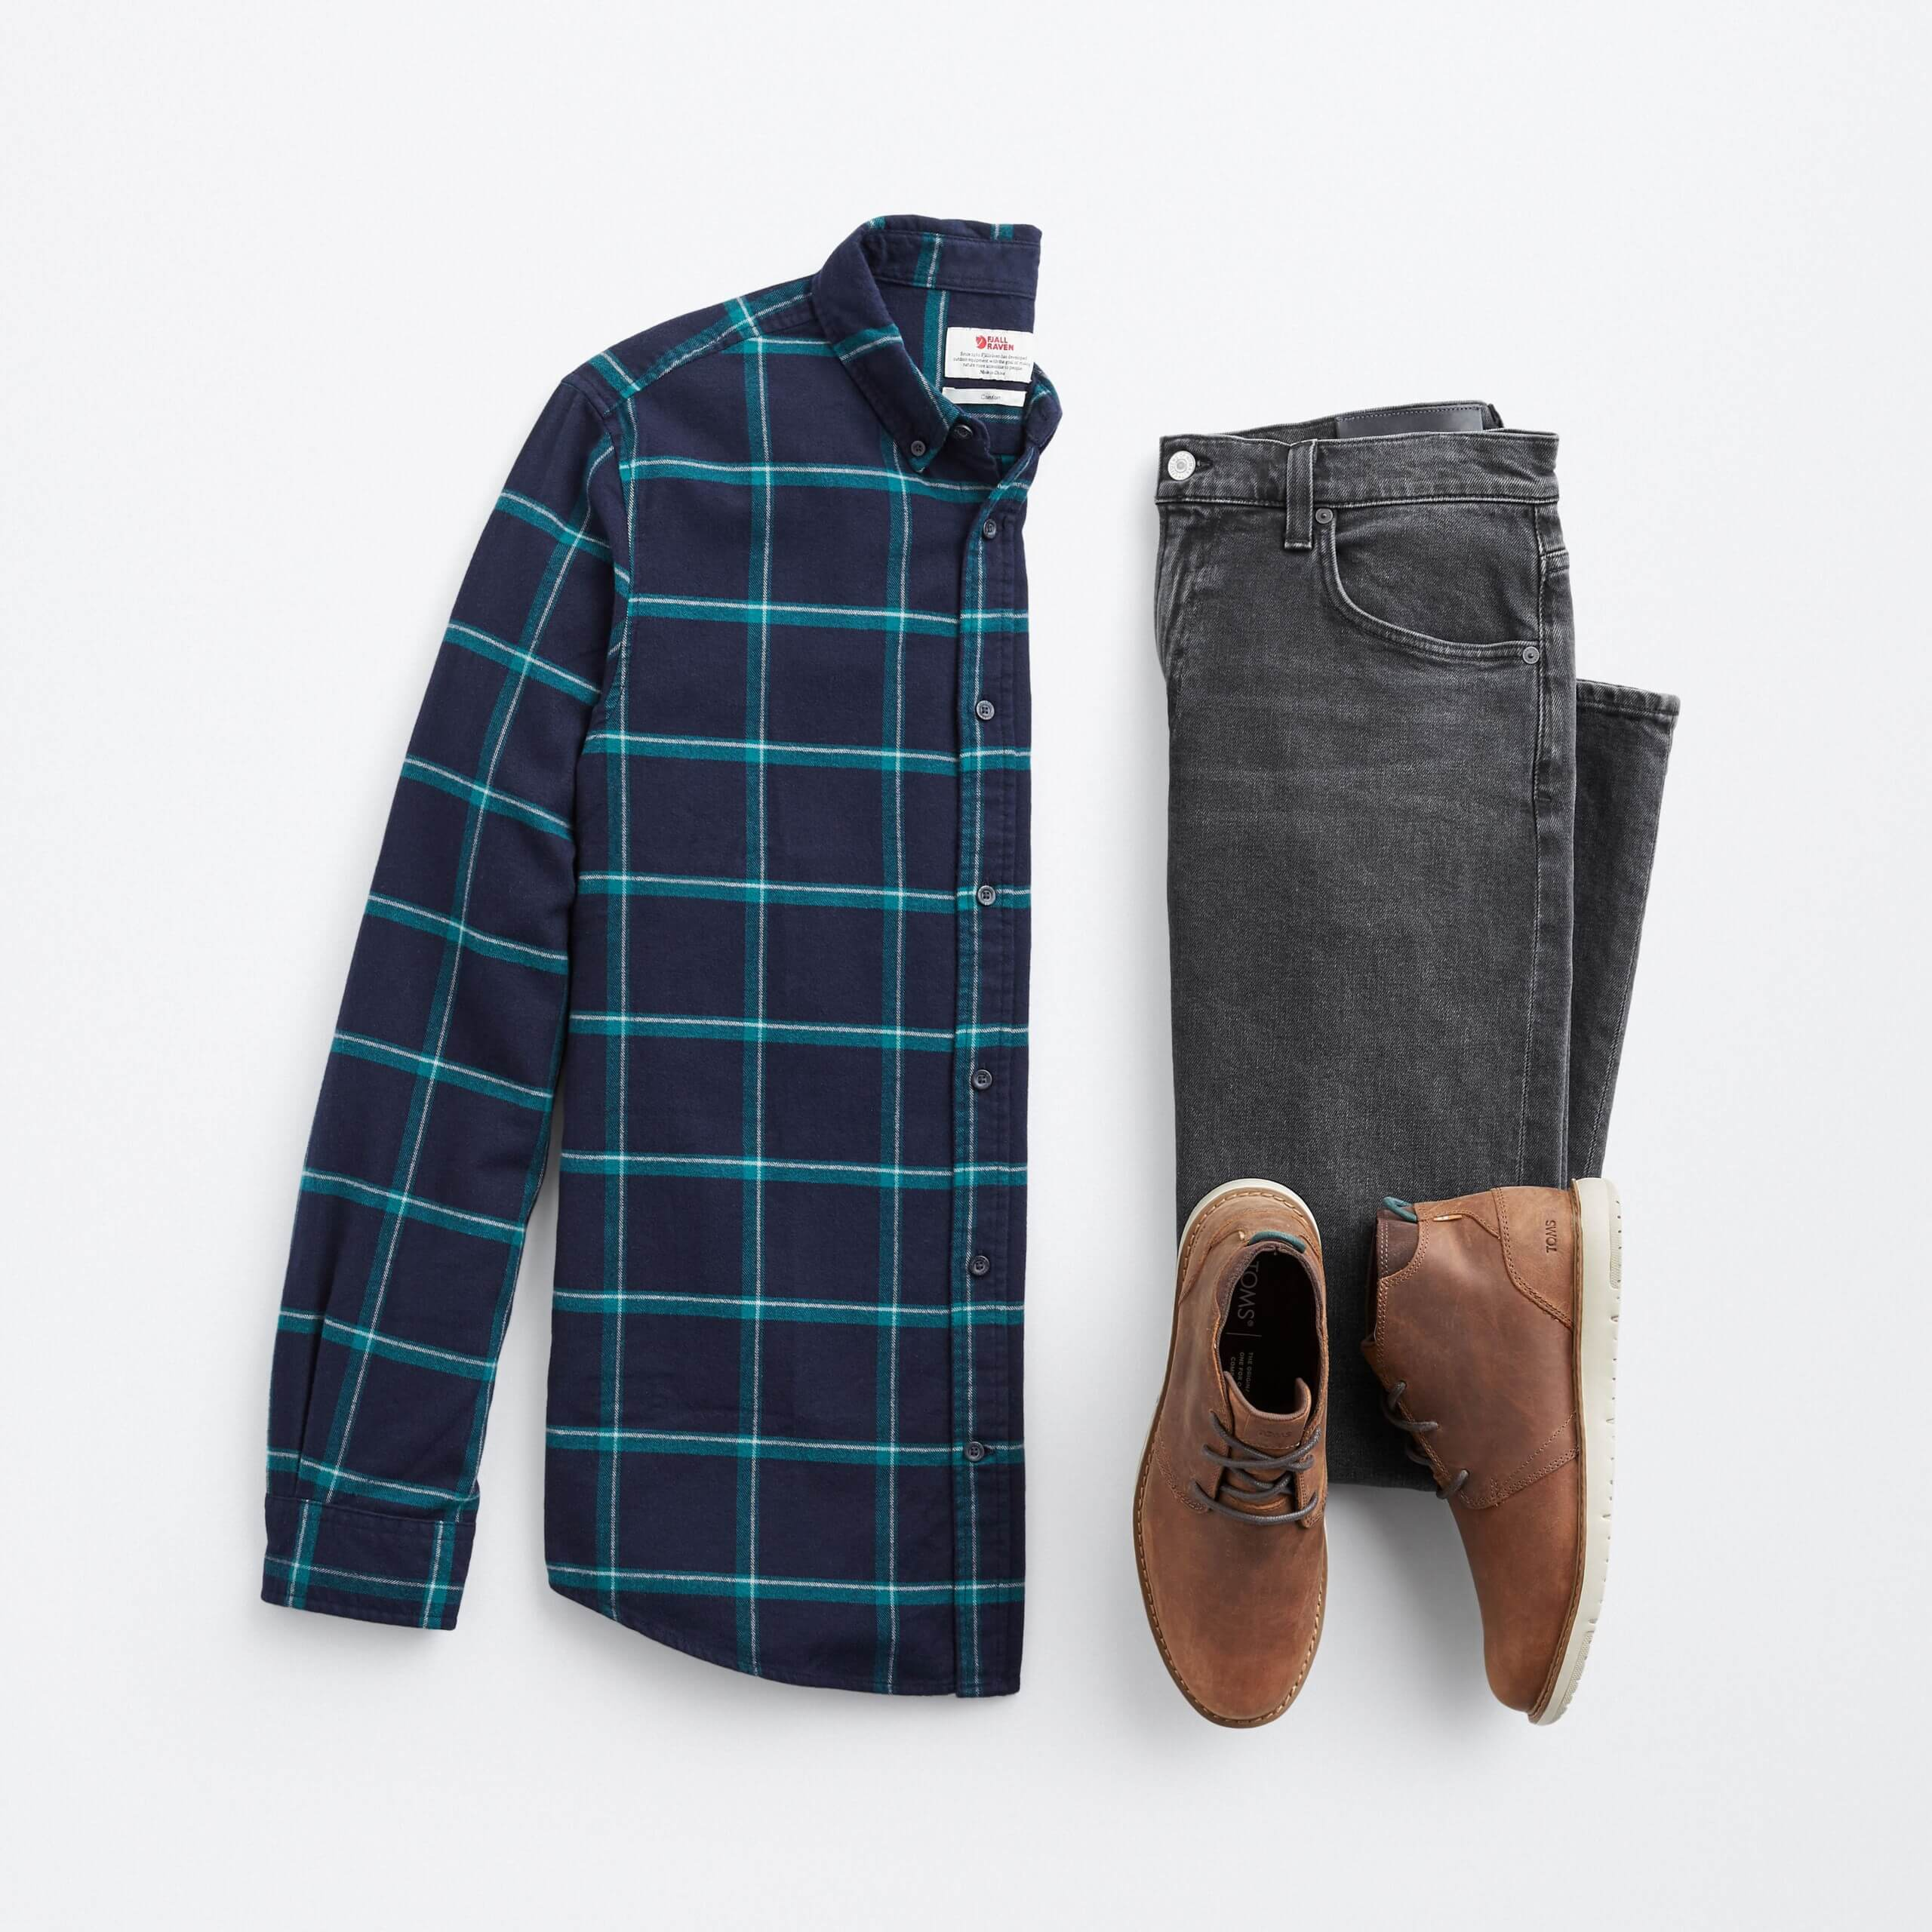 Stitch Fix men's navy and green plaid button-down with grey jeans and brown chukkas.